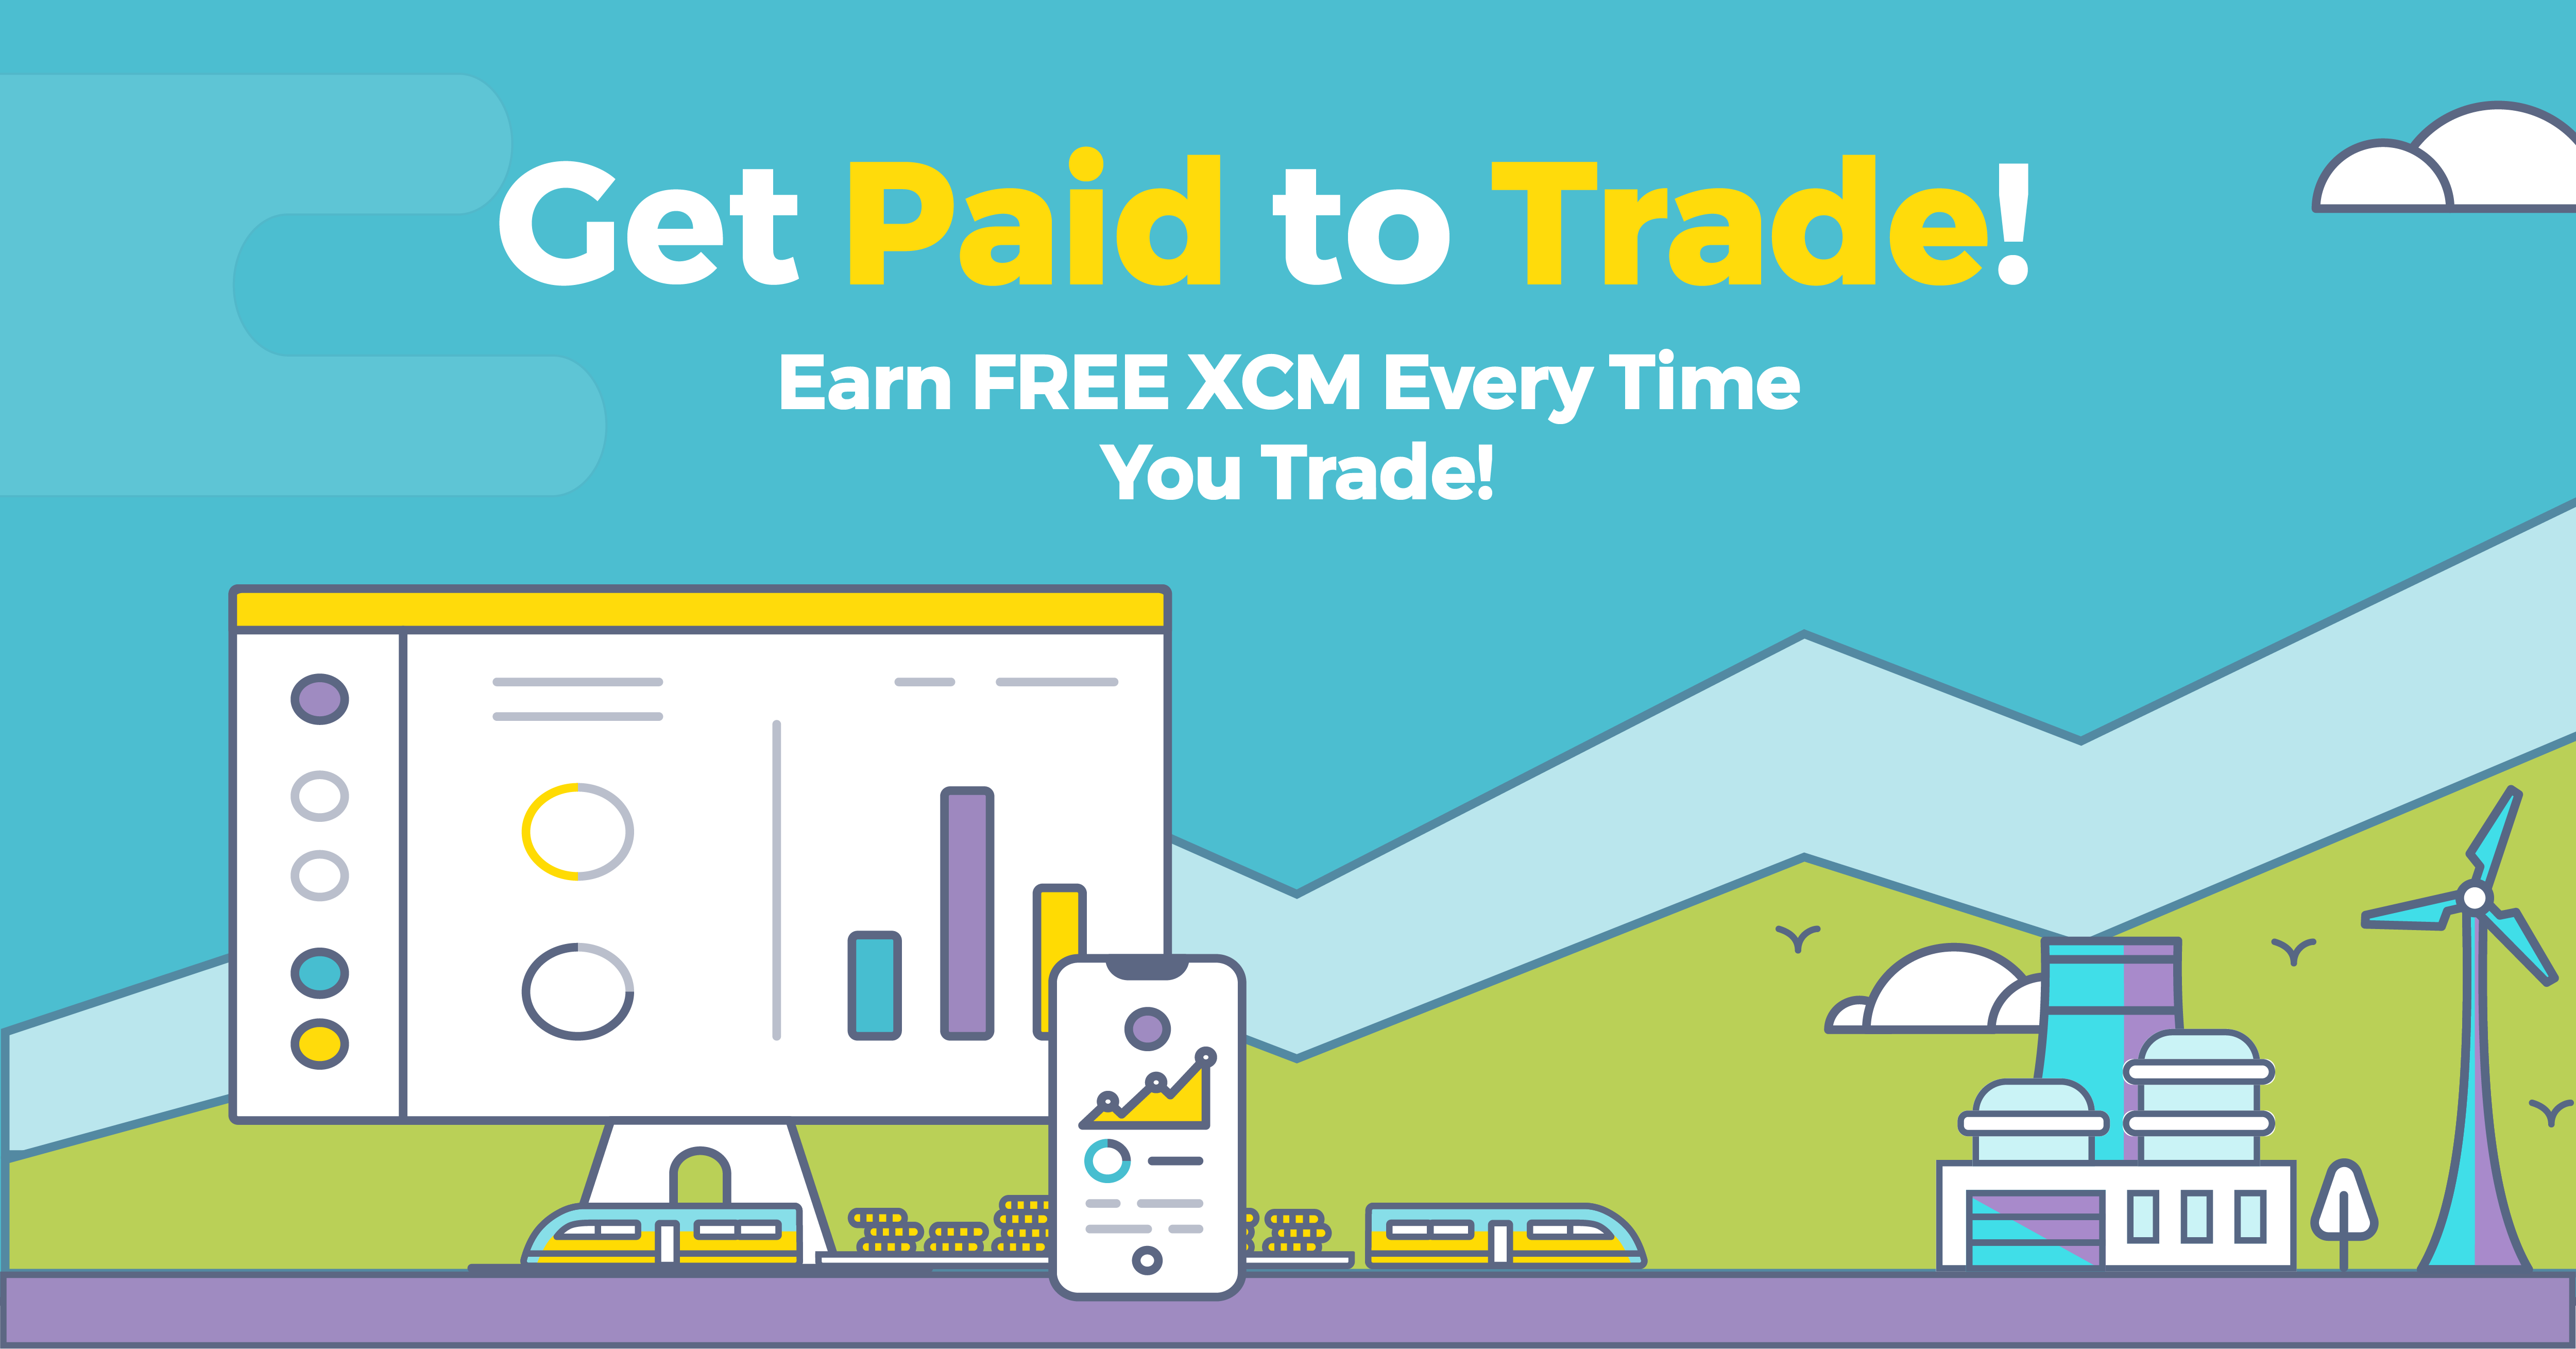 Get Paid to Trade With CoinMetro